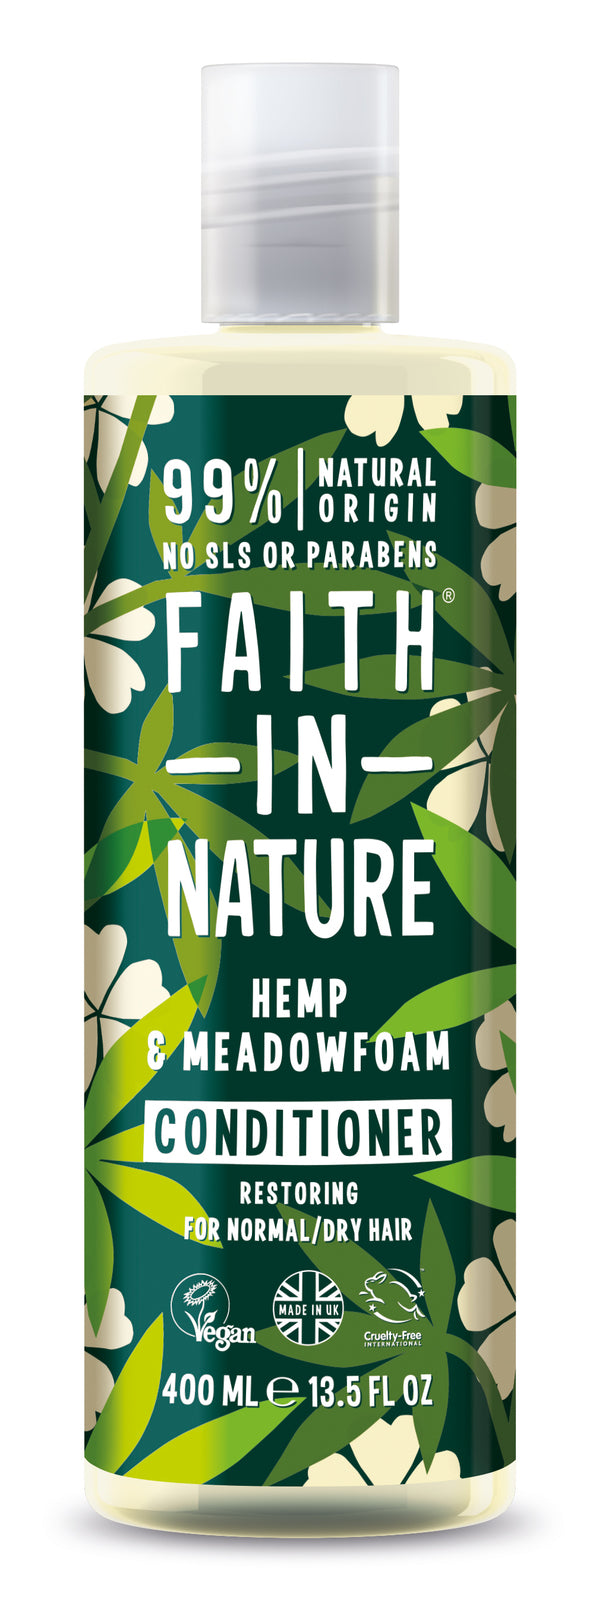 Faith In Nature: Hemp Meadowfoam Conditioner for Normal/Dry Hair (400ml)